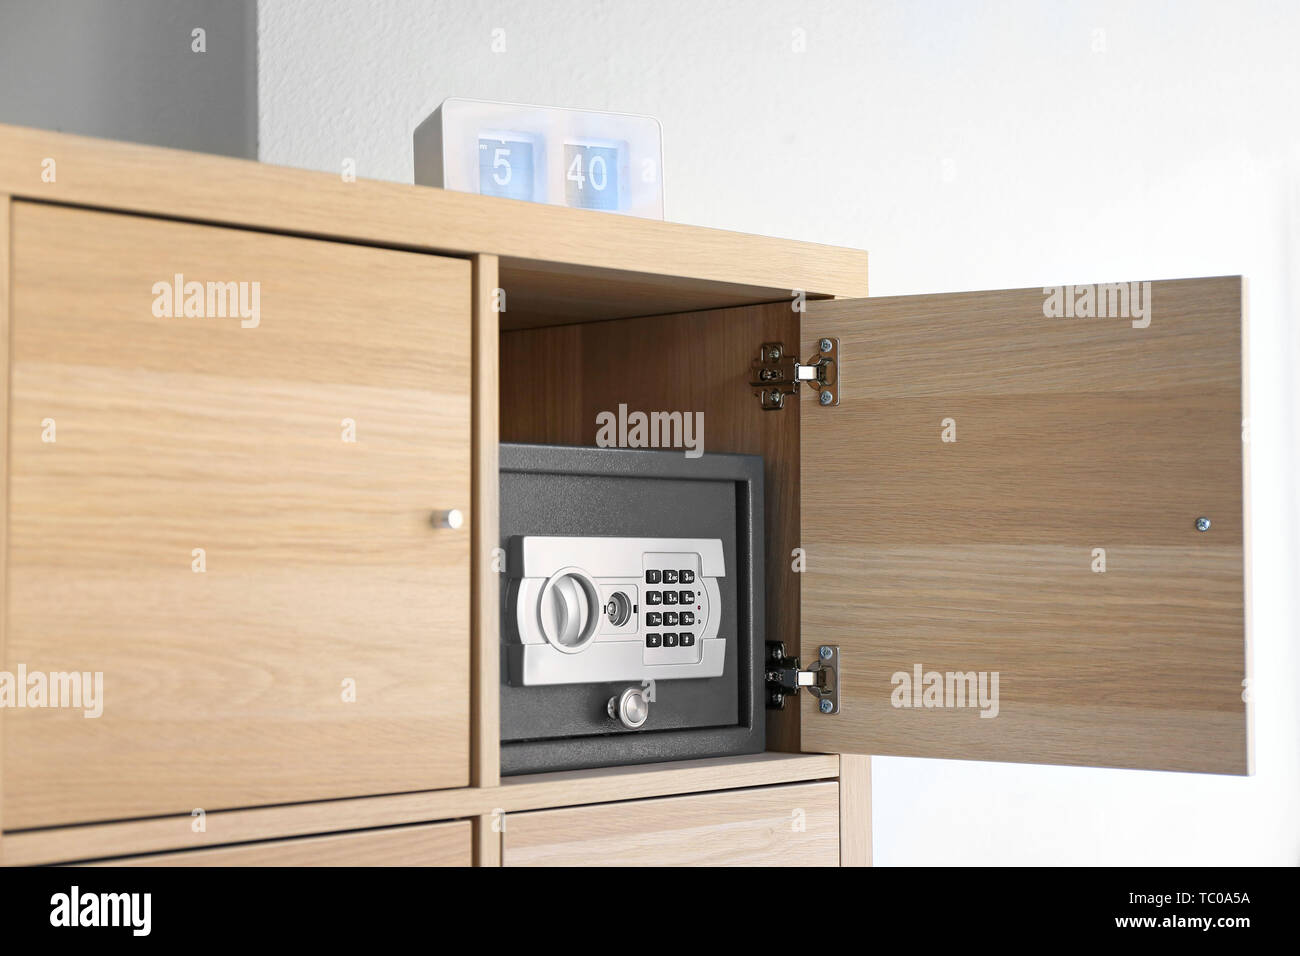 Picture of: Modern Small Safe In Cabinet Stock Photo Alamy